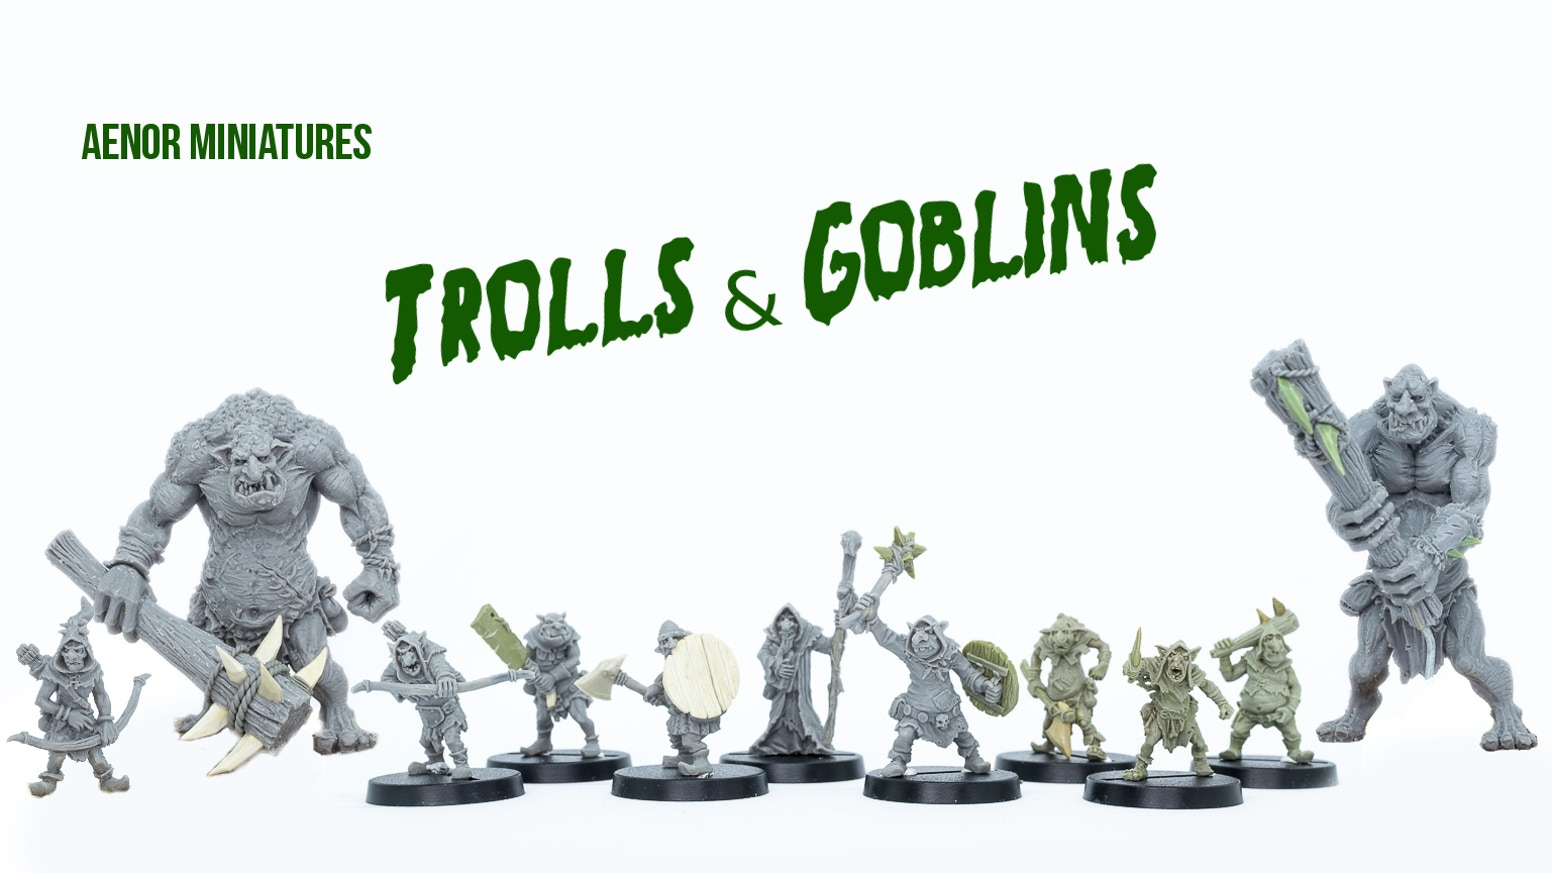 A small warband of Goblins and Trolls, but with your help they could grow into an army! These miniatures are cast in metal and resin.